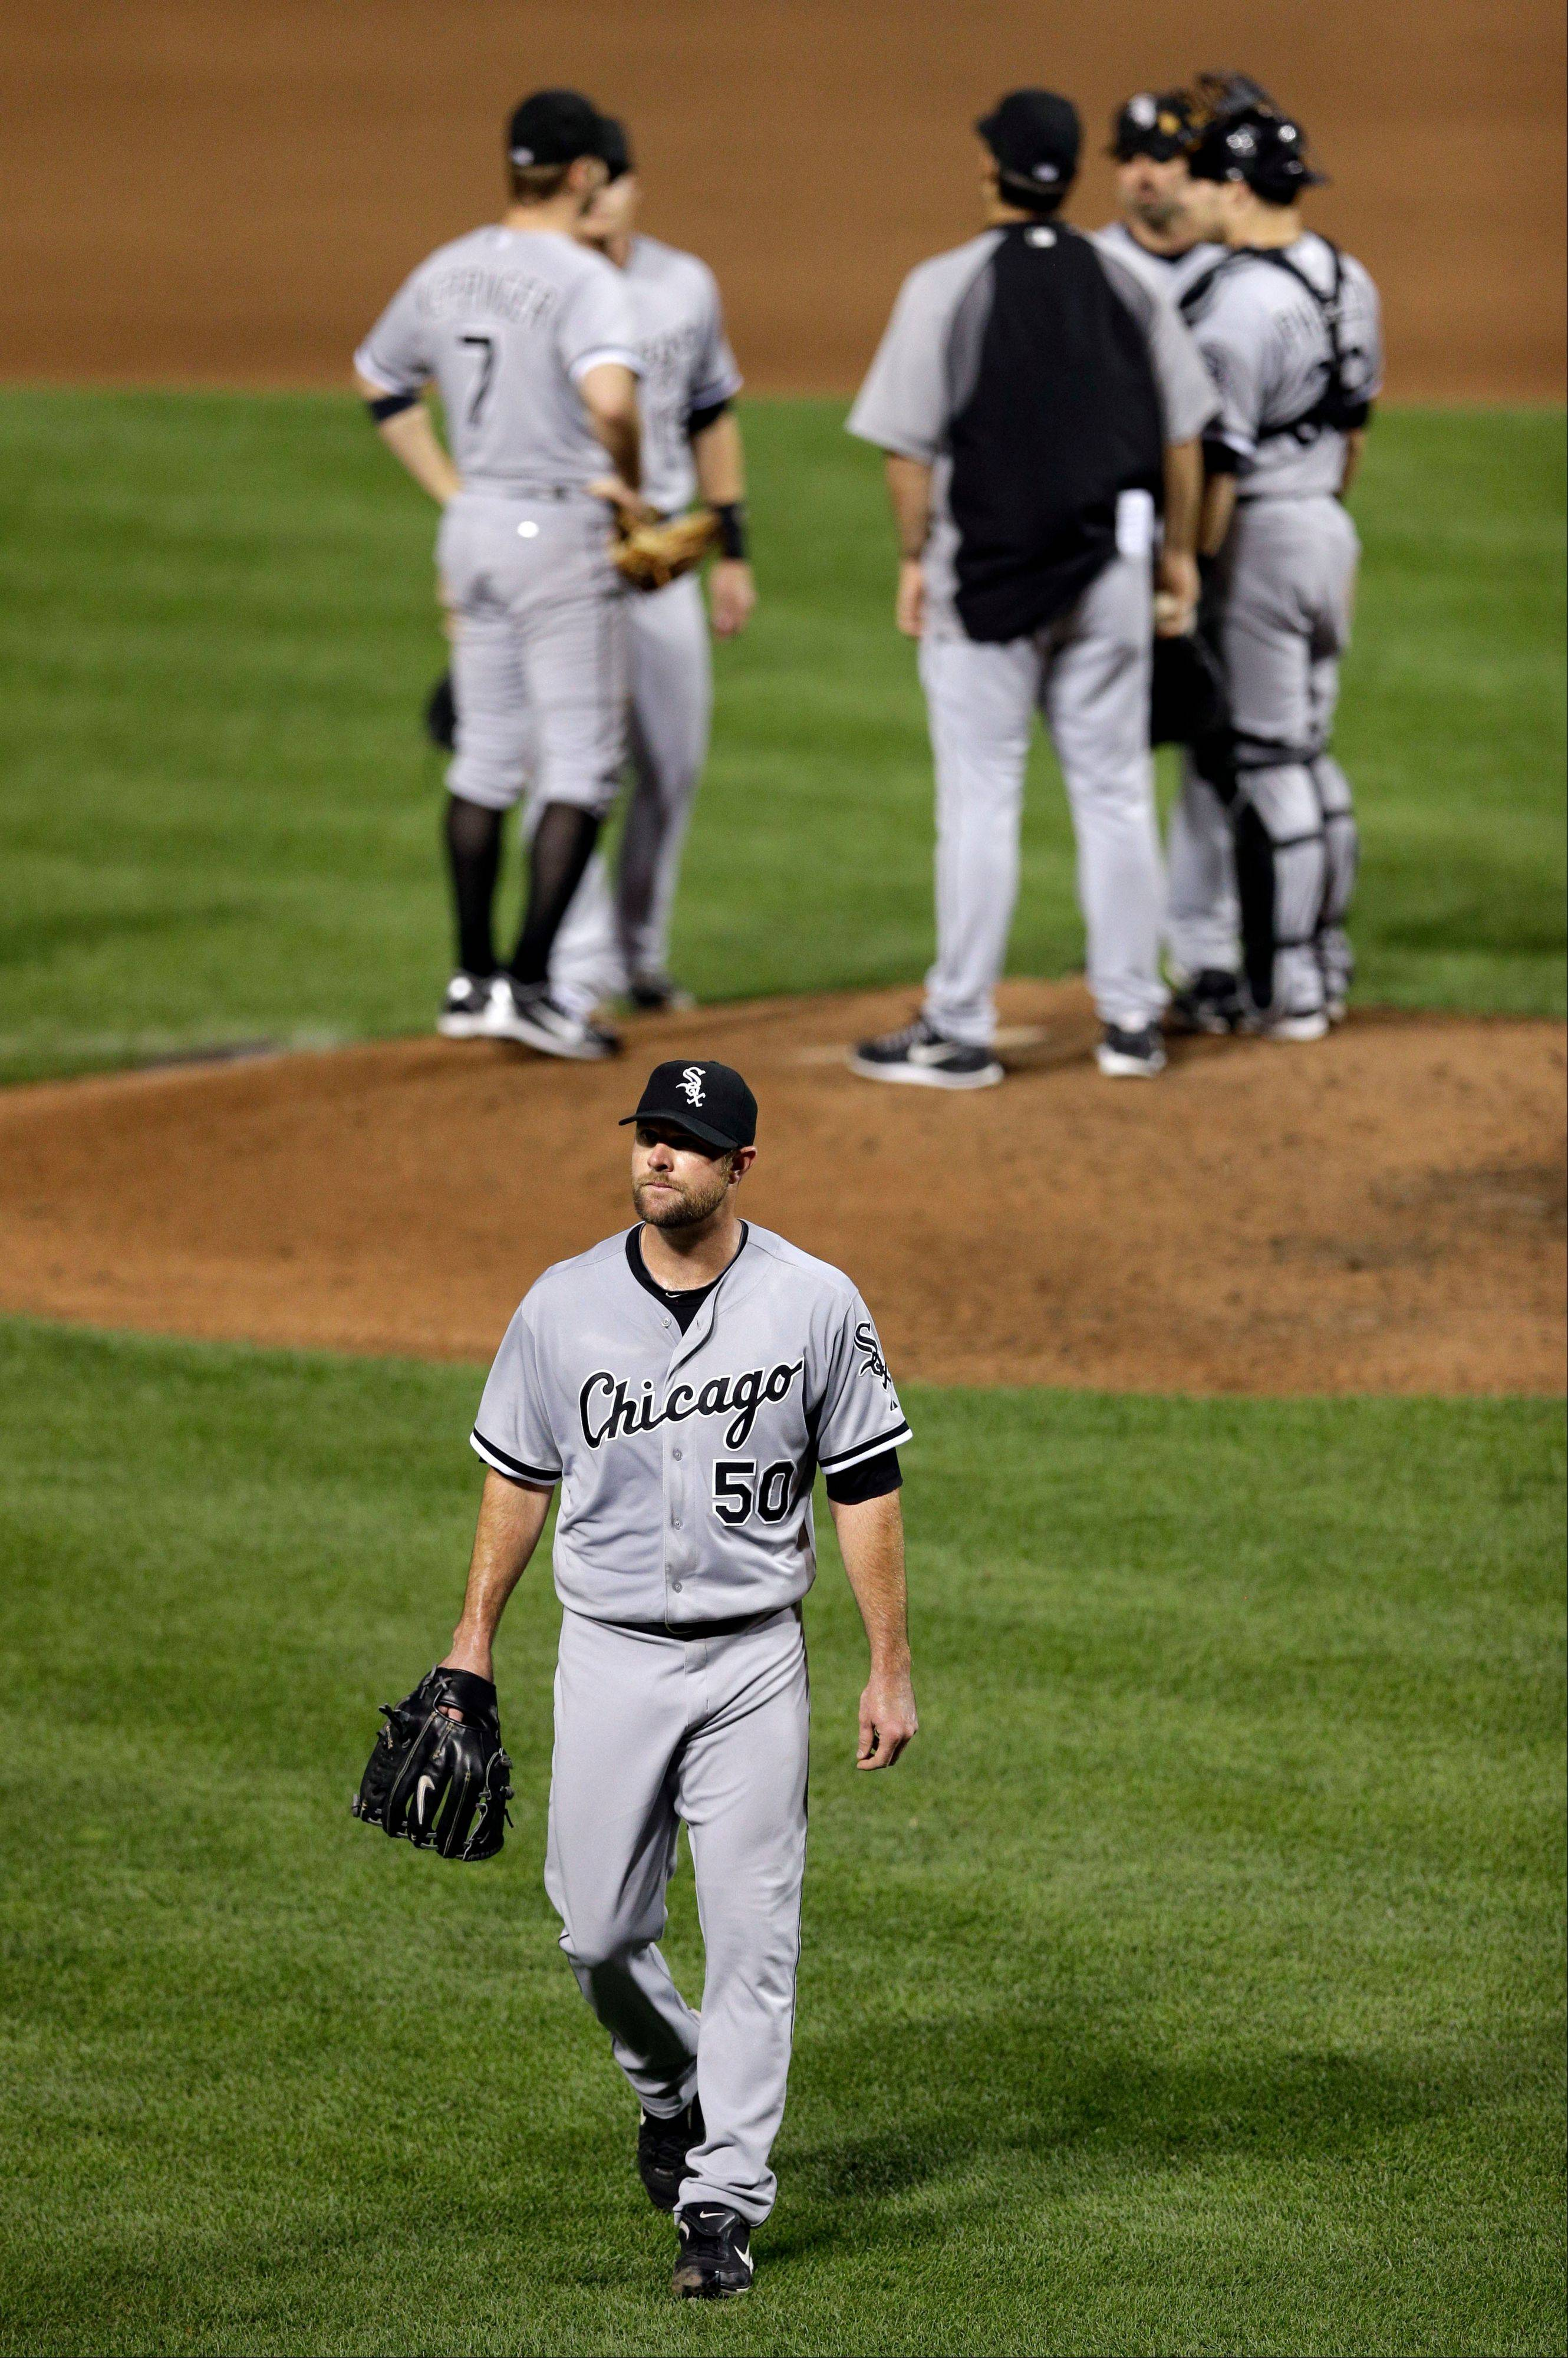 Chicago White Sox starting pitcher John Danks (50) walks off the field after being relieved in the sixth inning.